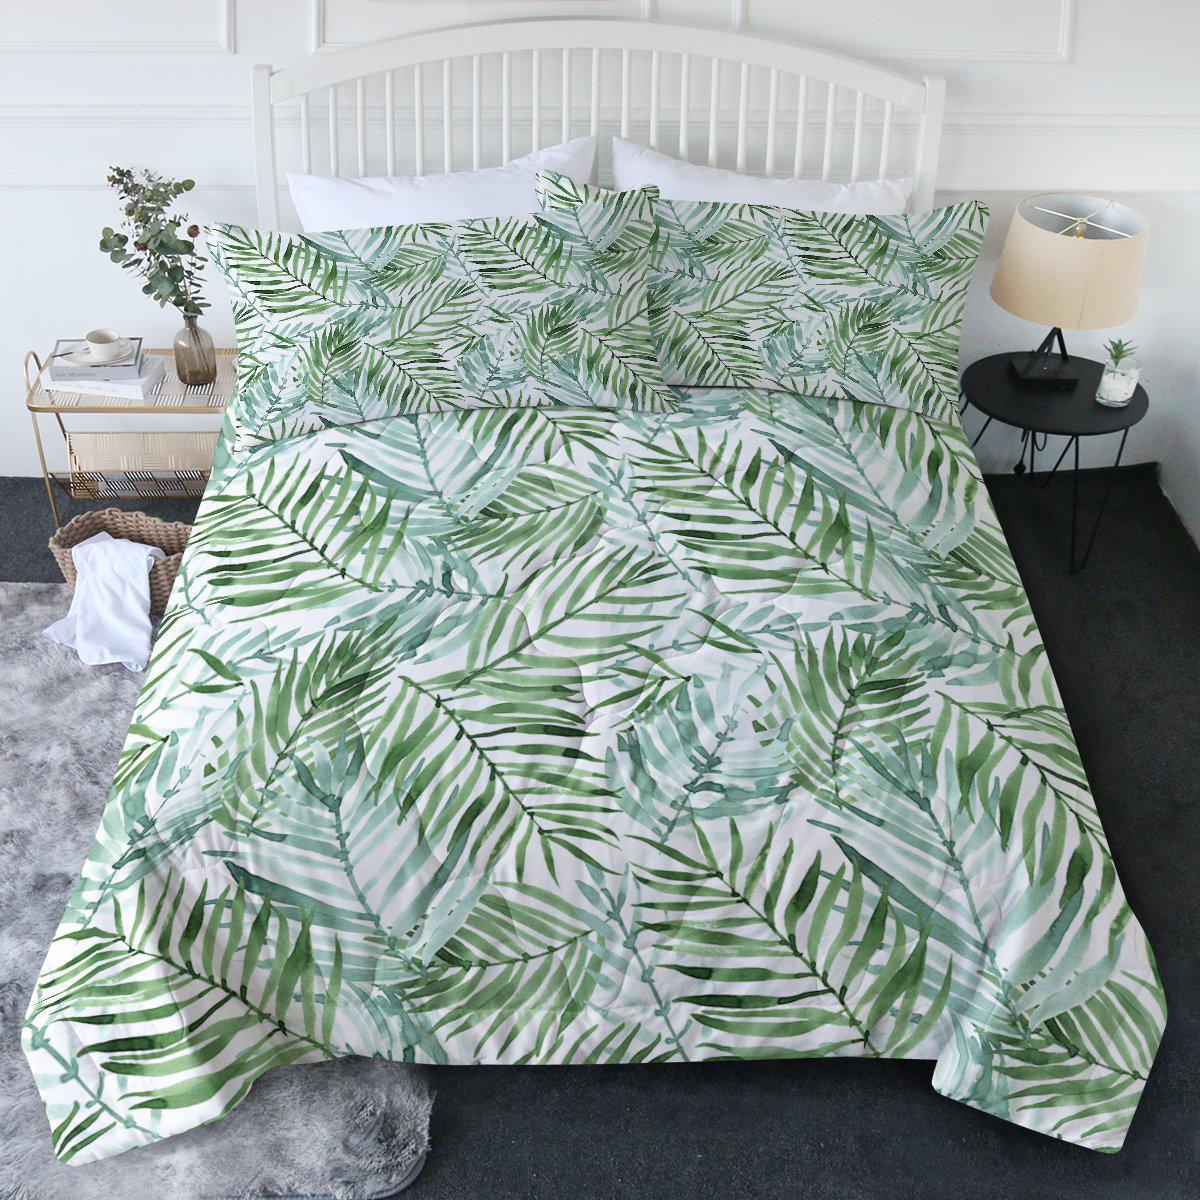 Tropical Palm Leaves Comforter Set-Coastal Passion